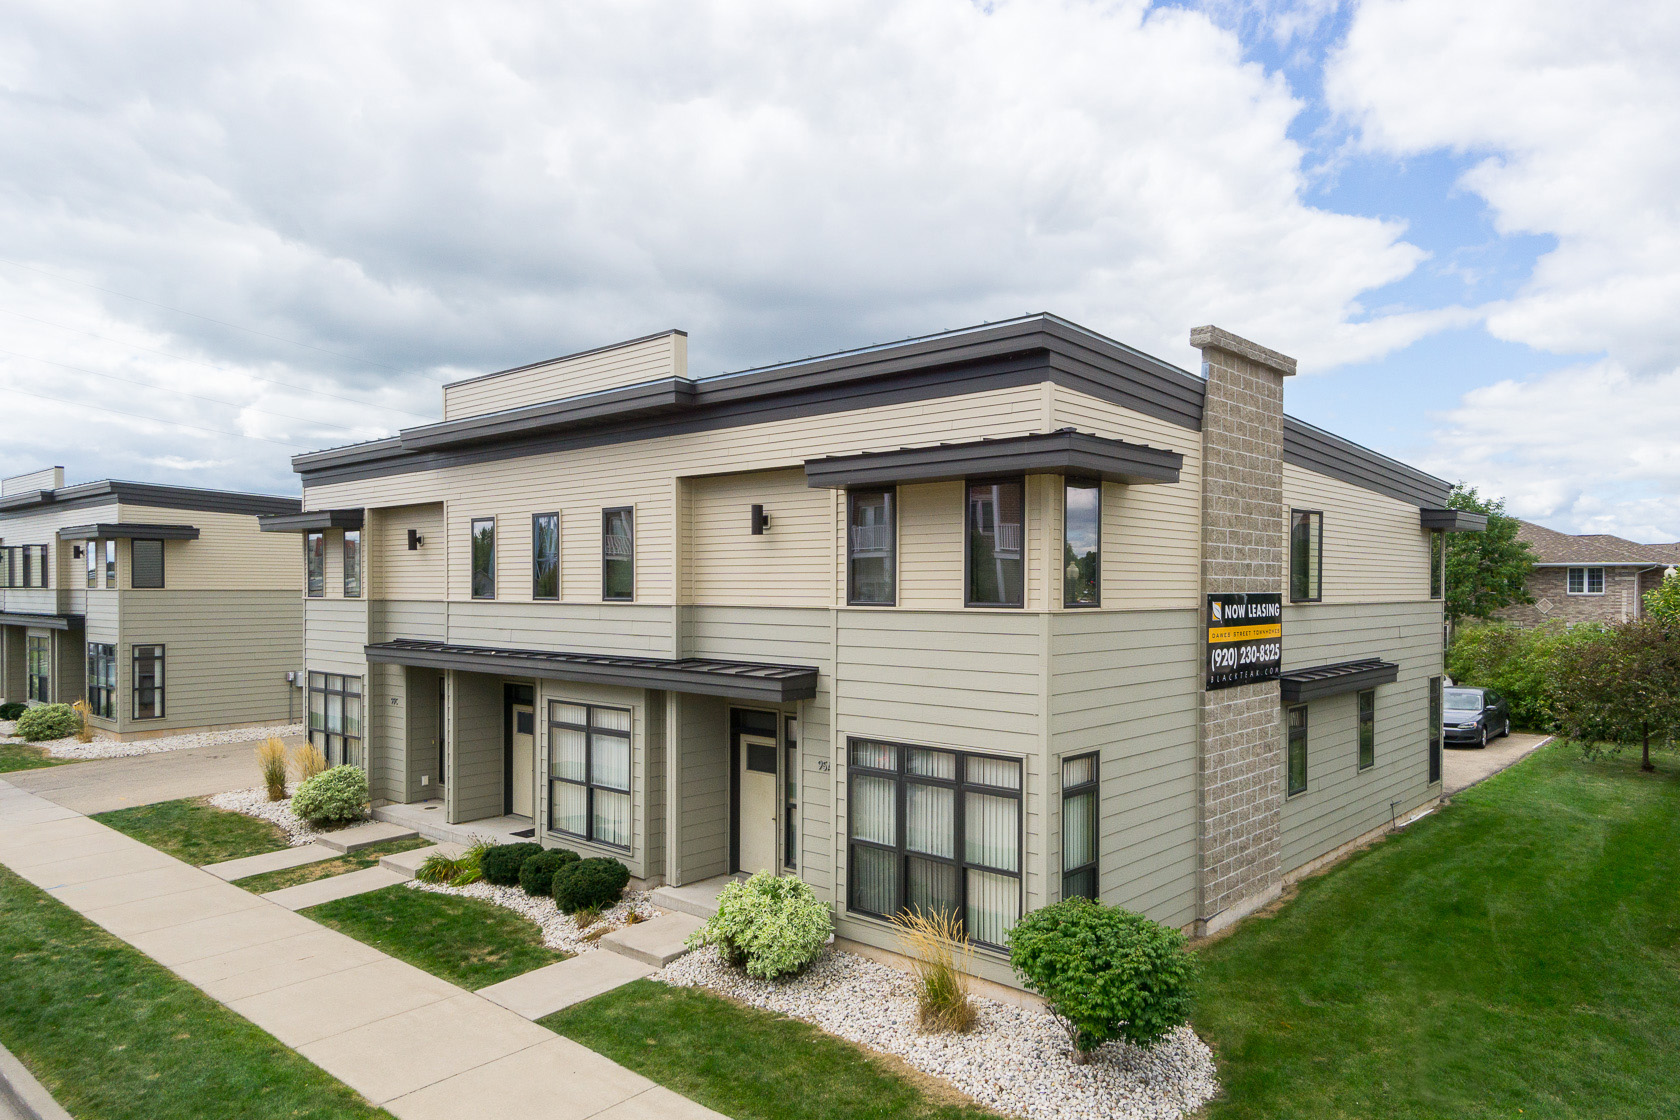 College sublease, college student housing near uw-oshkosh , uw-oshkosh off campus lofts